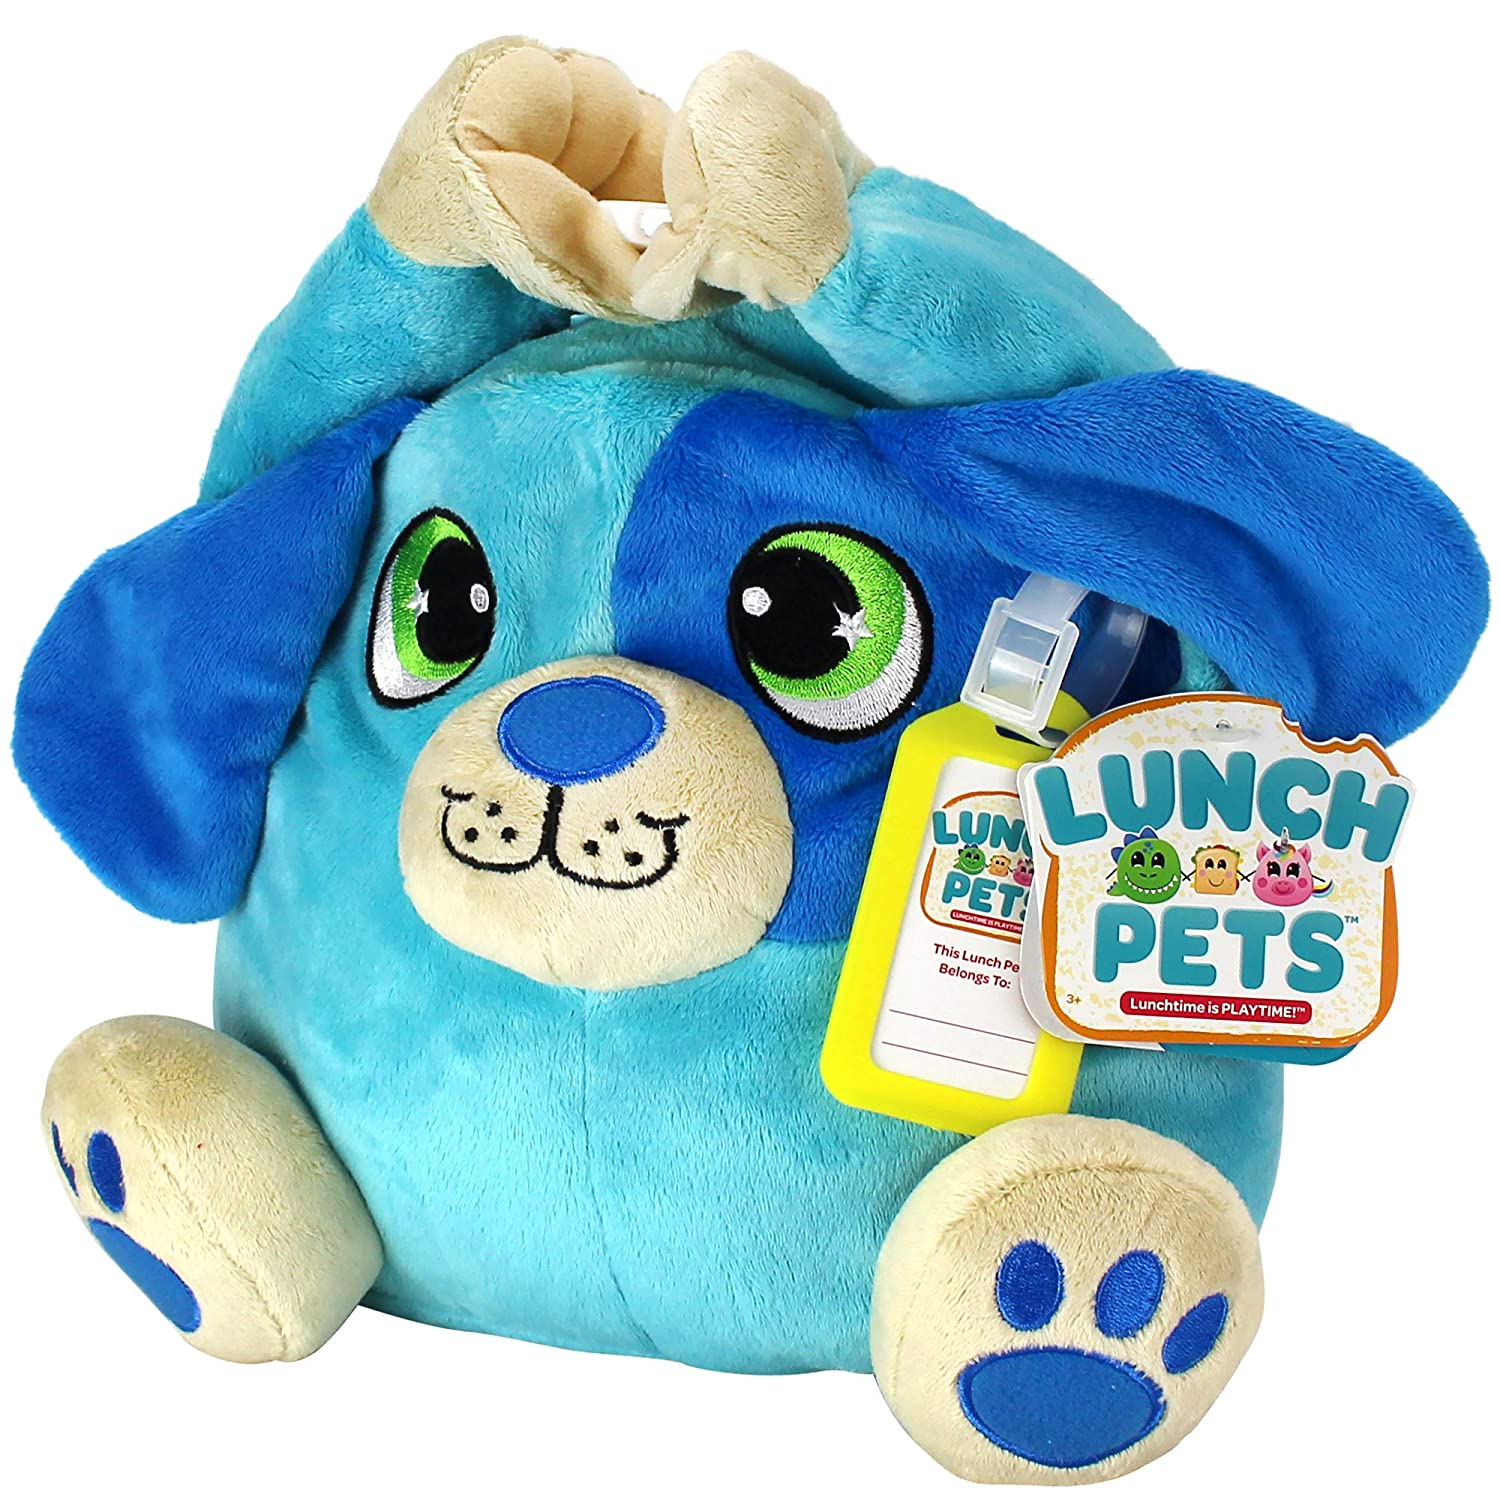 c91d37177 Amazon.com: Lunch Pets Amazing Plush Animal Combination - HungryPup Kids  Lunch Box, Travel Size, Blue: Kitchen & Dining